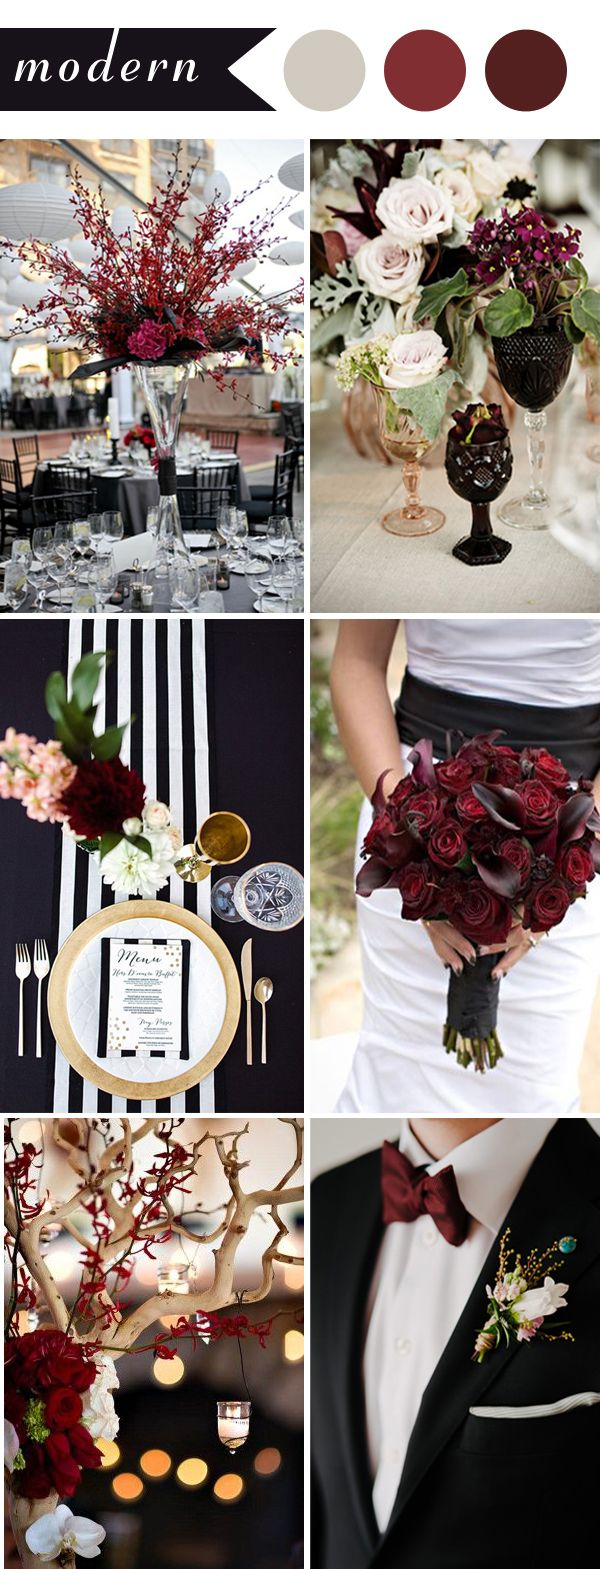 Wedding decorations for outside january 2019 Perfect Burgundy Wedding Themes Ideas for   Wedding colors